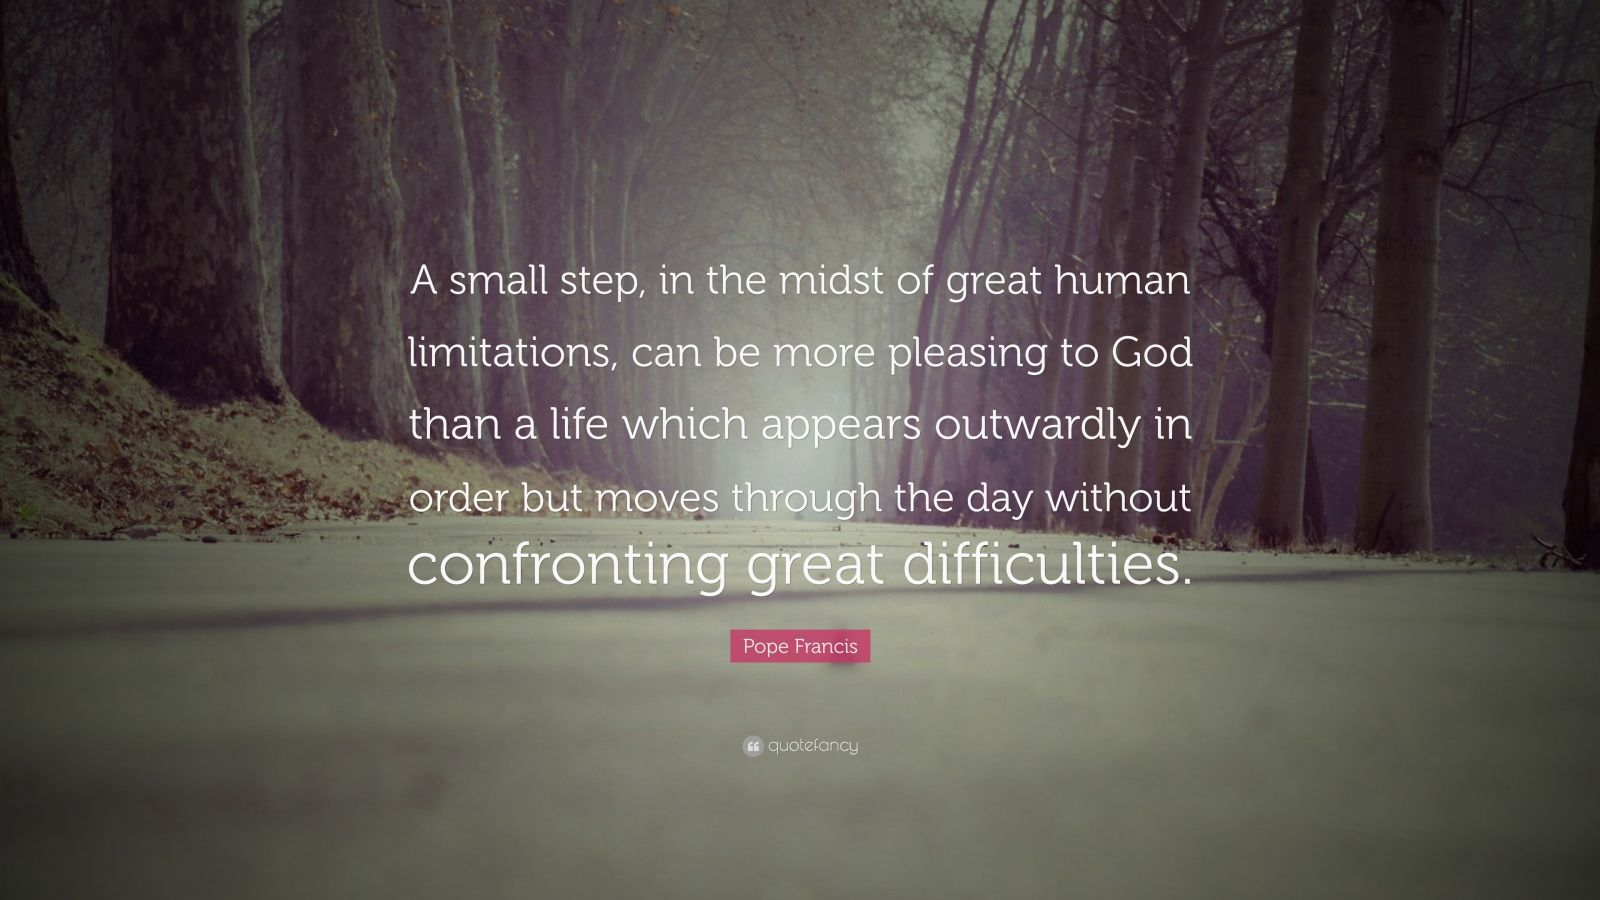 """Pope Francis Quote: """"A small step, in the midst of great human limitations, can be more pleasing to God than a life which appears outwardly in order but moves through the day without confronting great difficulties."""""""